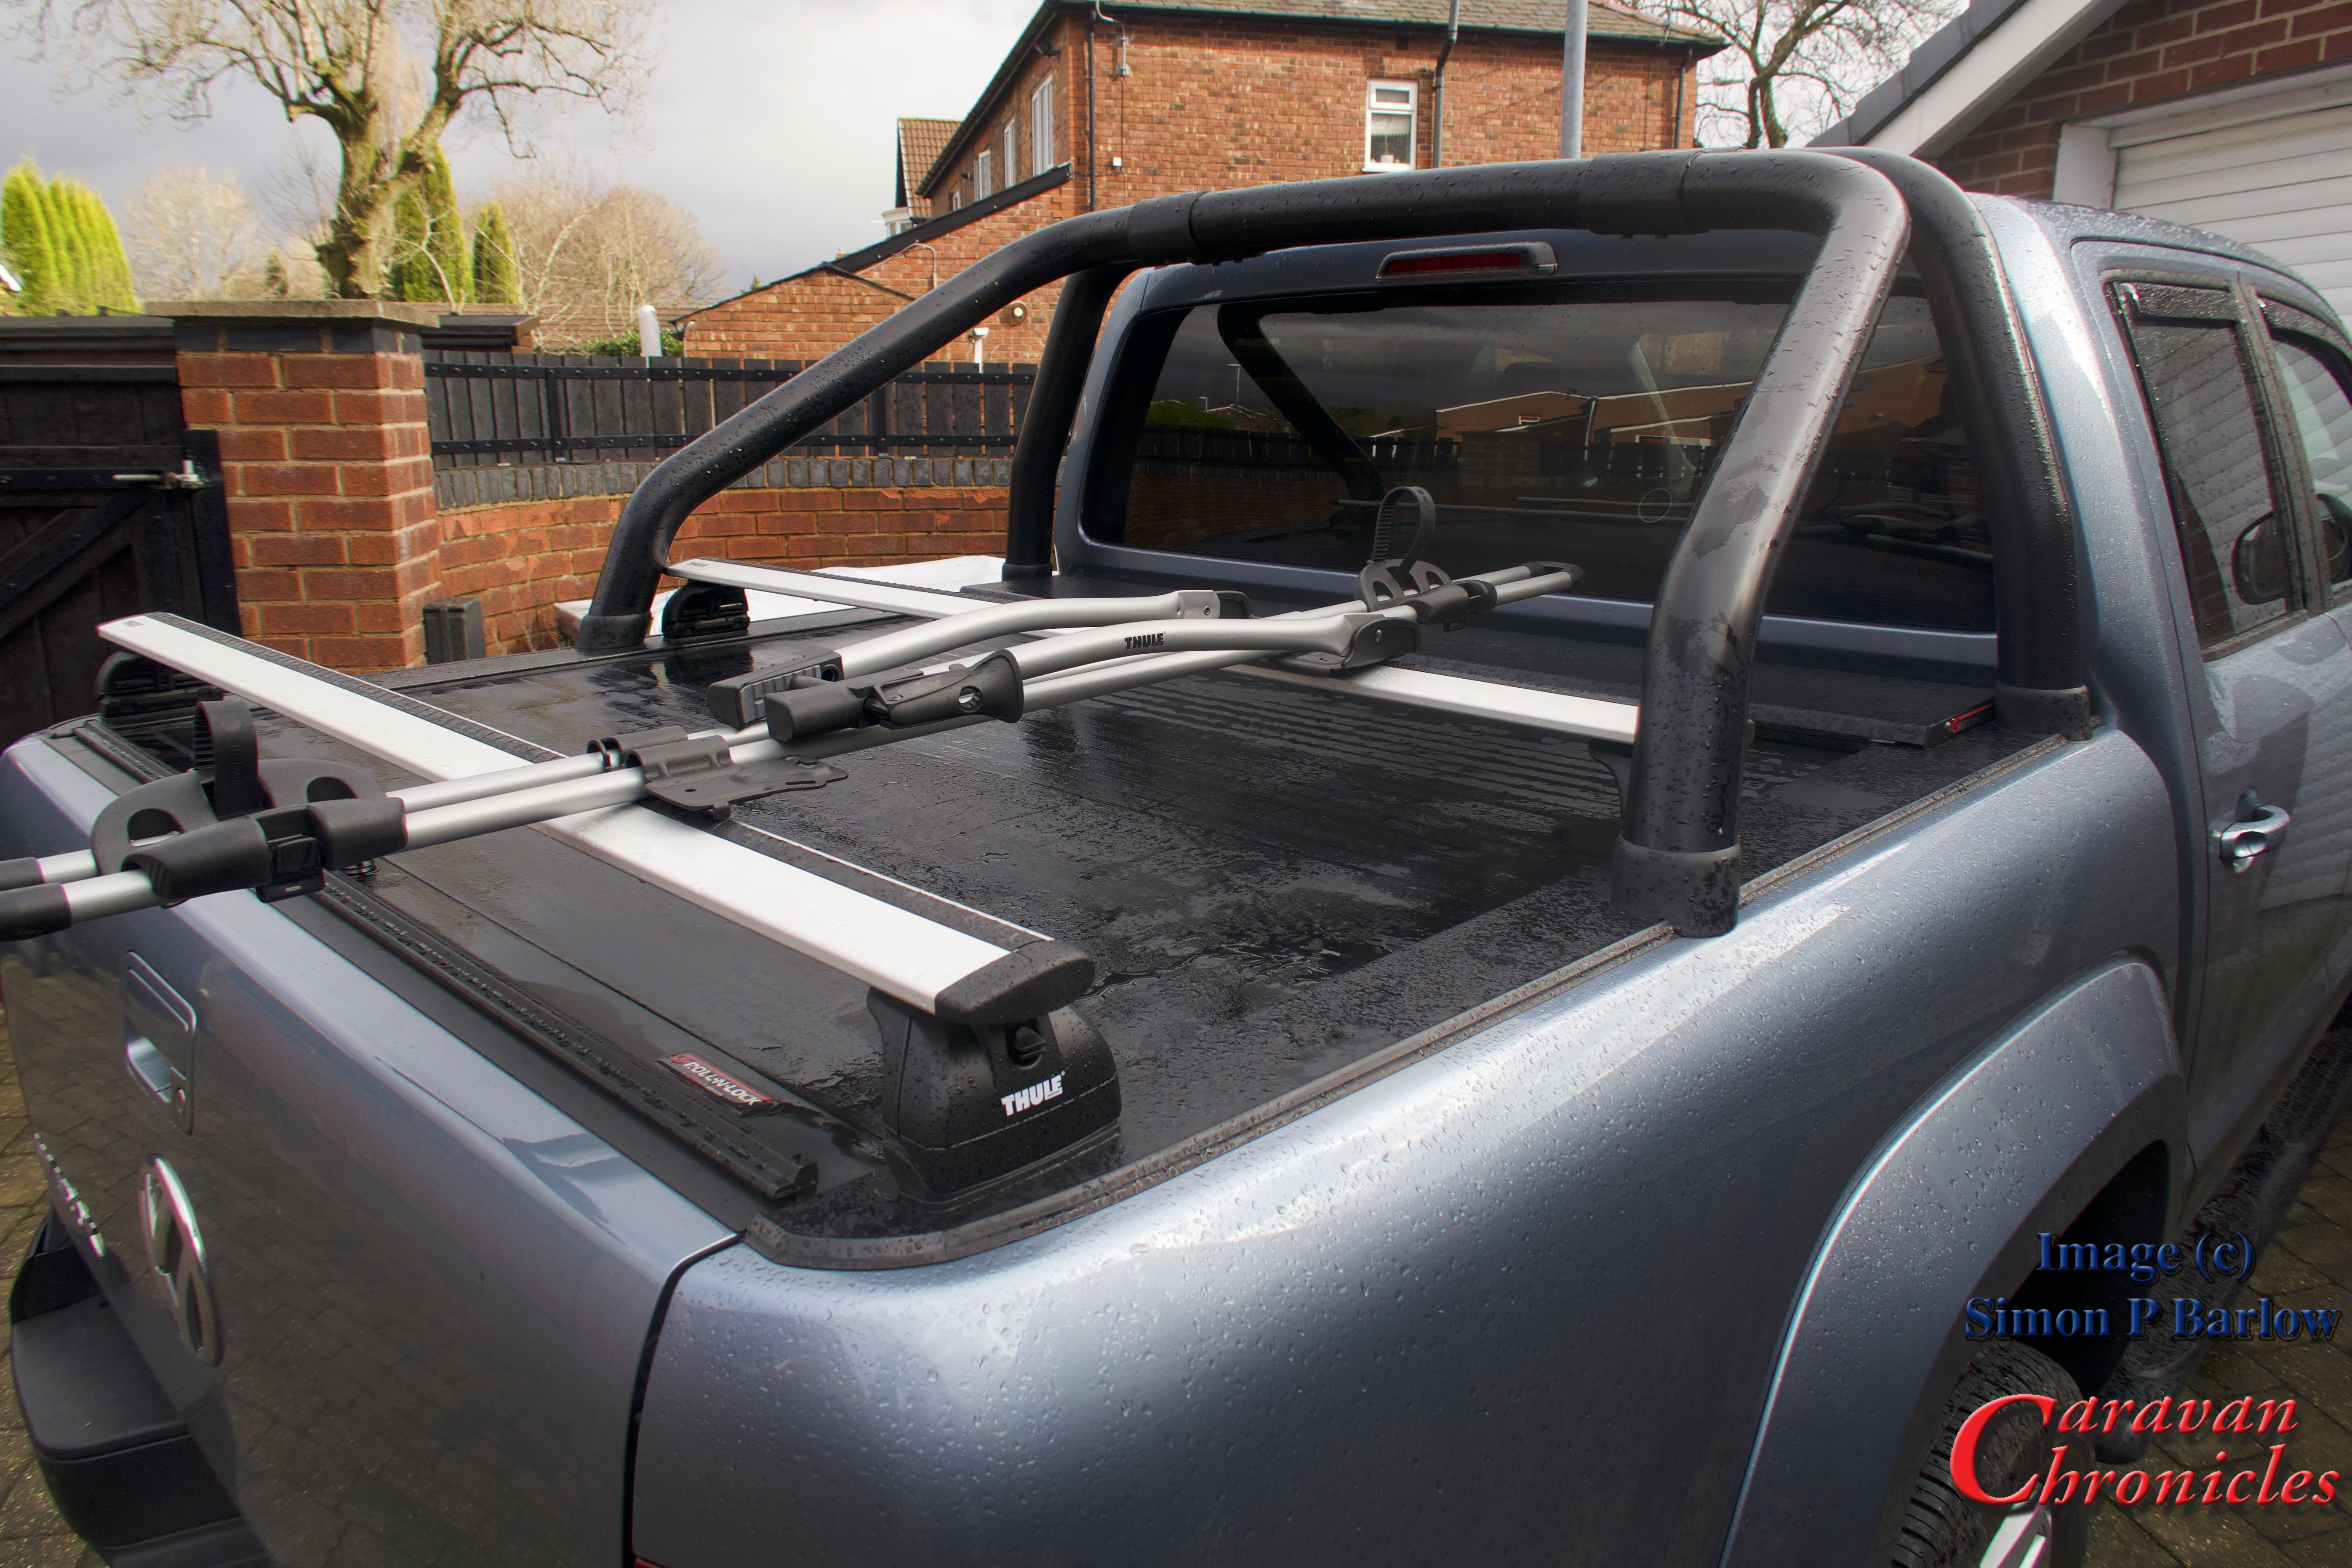 Fitting A Bike Rack To The Vw Amarok Part 1 Caravan